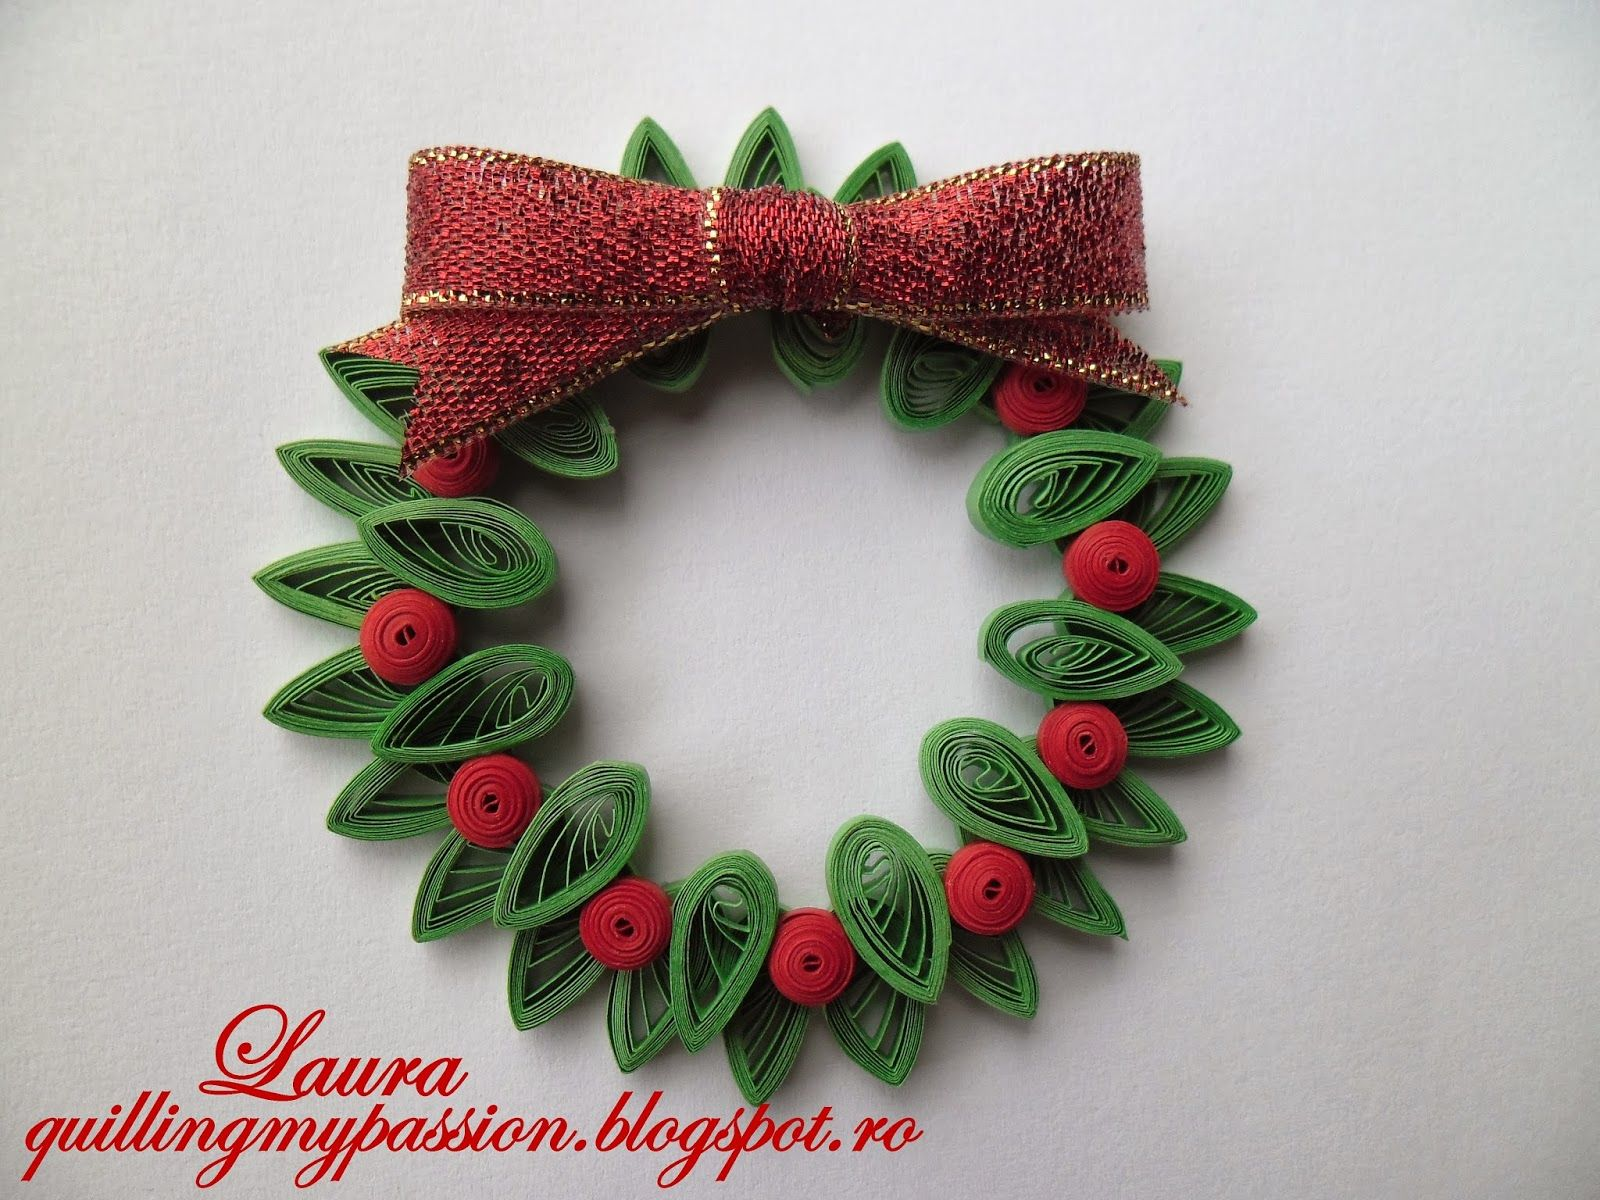 Quilling Christmas Ornaments Christmas Ornaments Pinterest Recent Photos The Commons 20under20 G Quilling Christmas Quilling Paper Craft Quilling Patterns